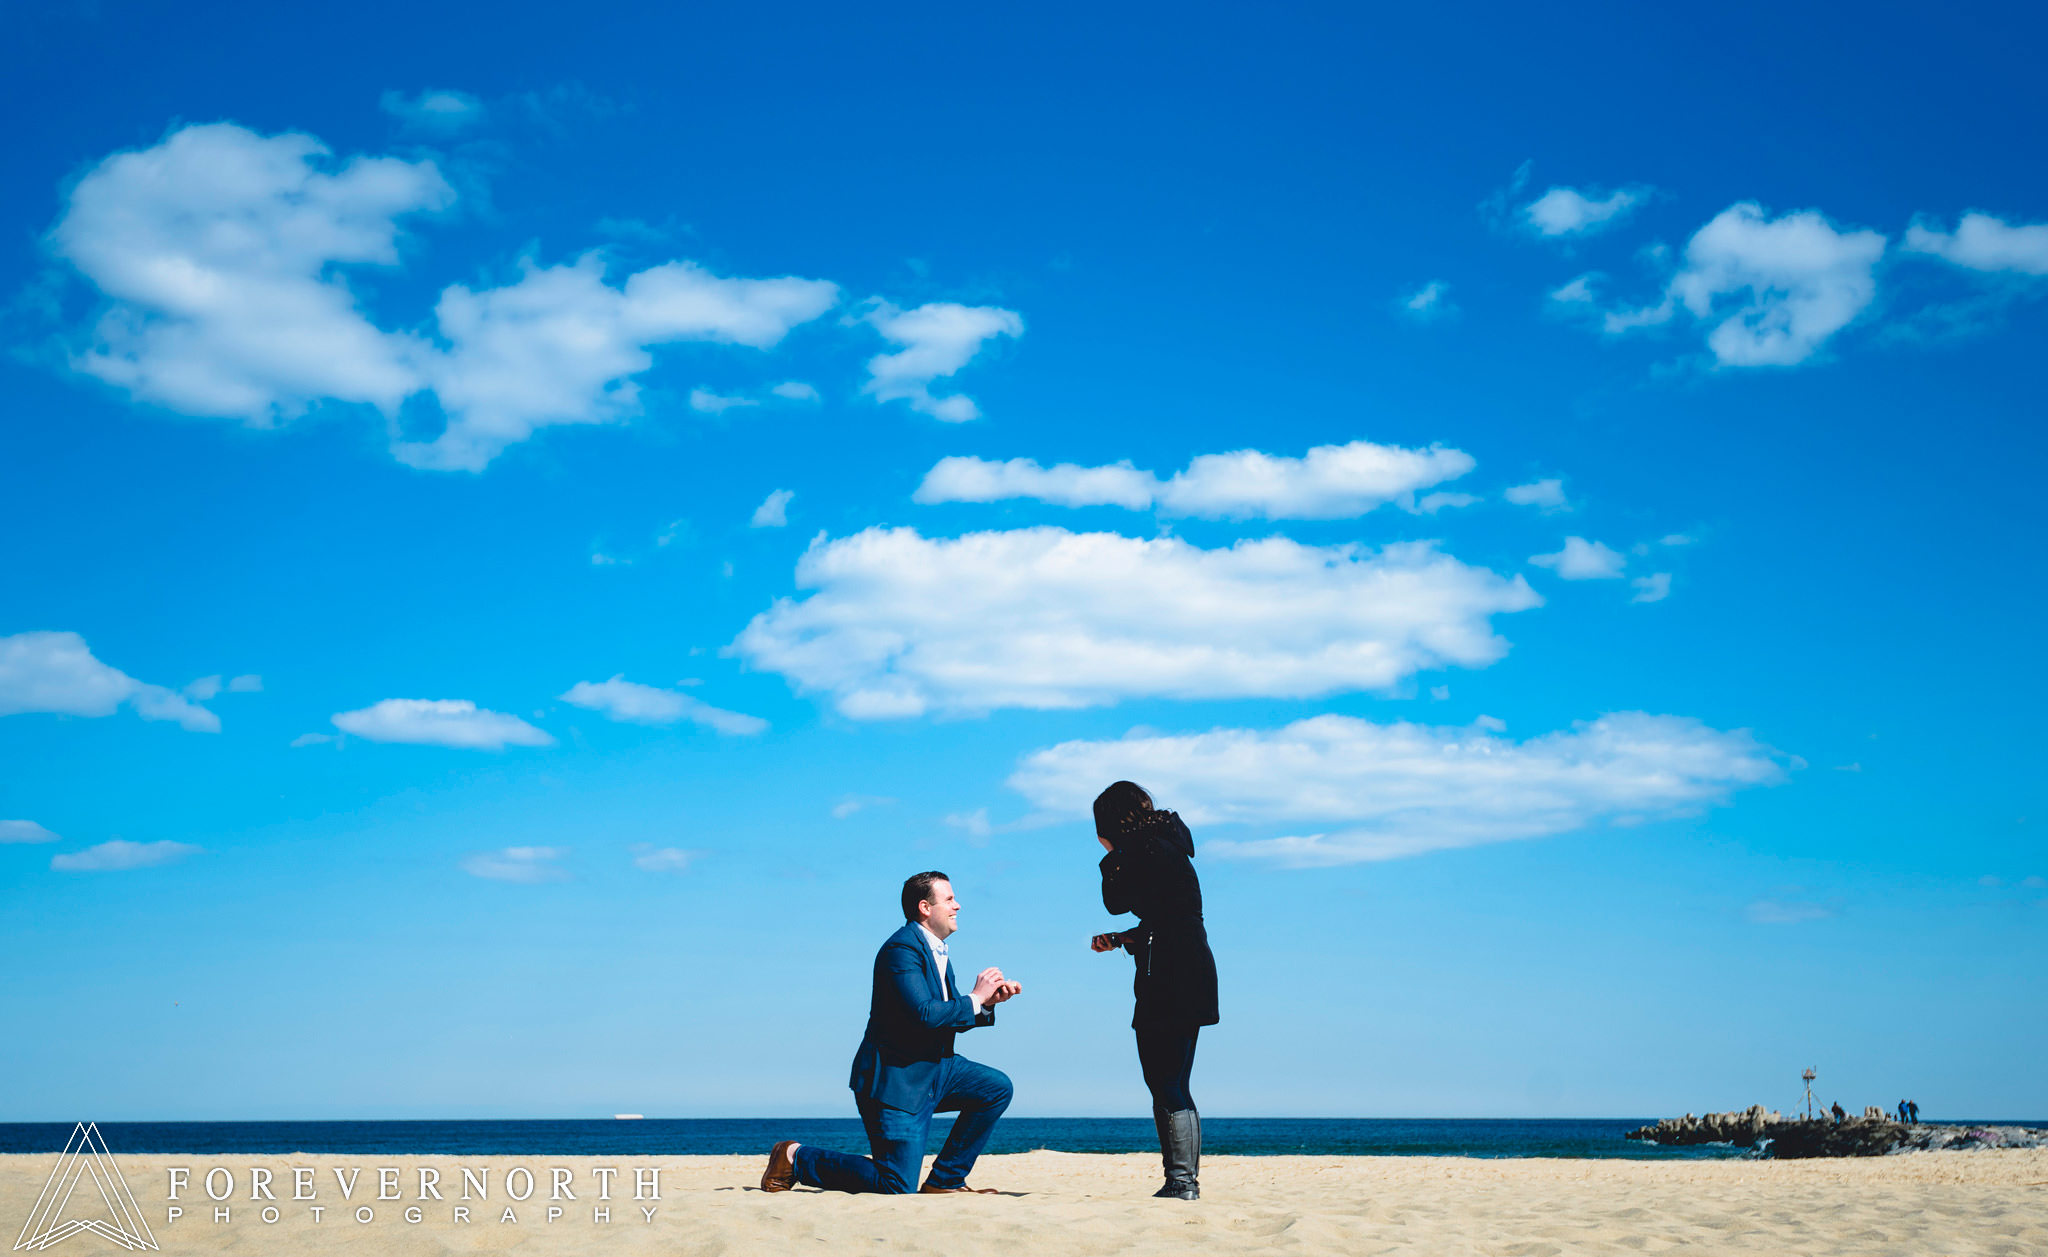 Schall-Forever-North-Photography-Proposal-Engagement-Photographer-Manasquan-Beach-18.JPG